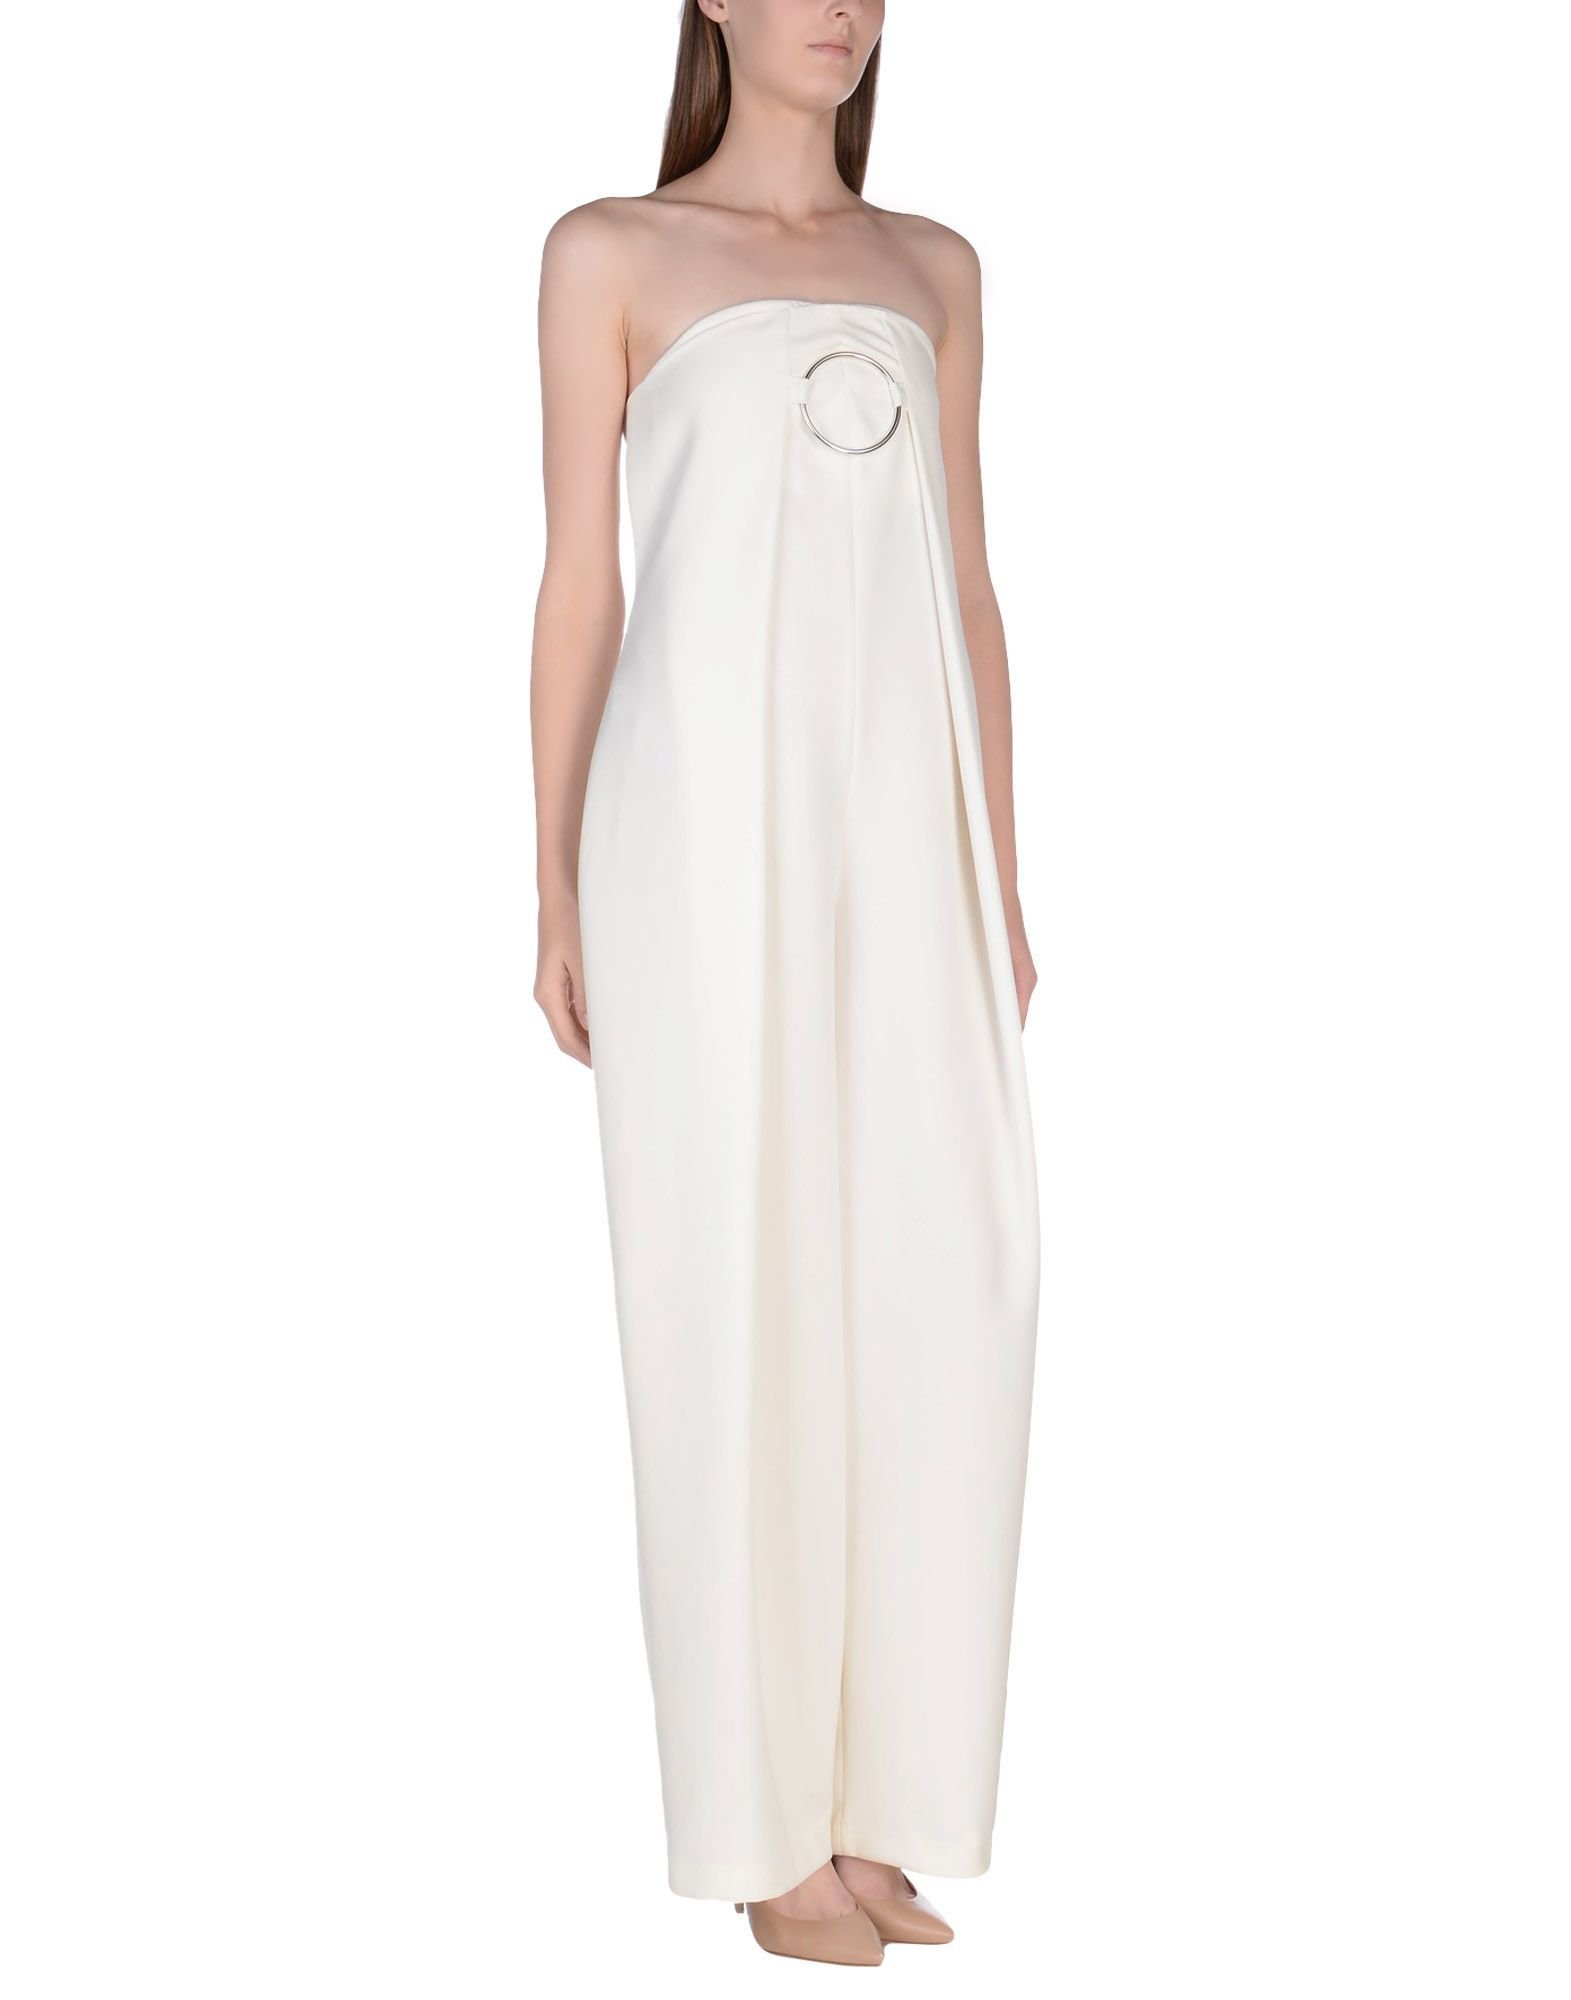 DUNGAREES Nora Barth Ivory Woman Polyester